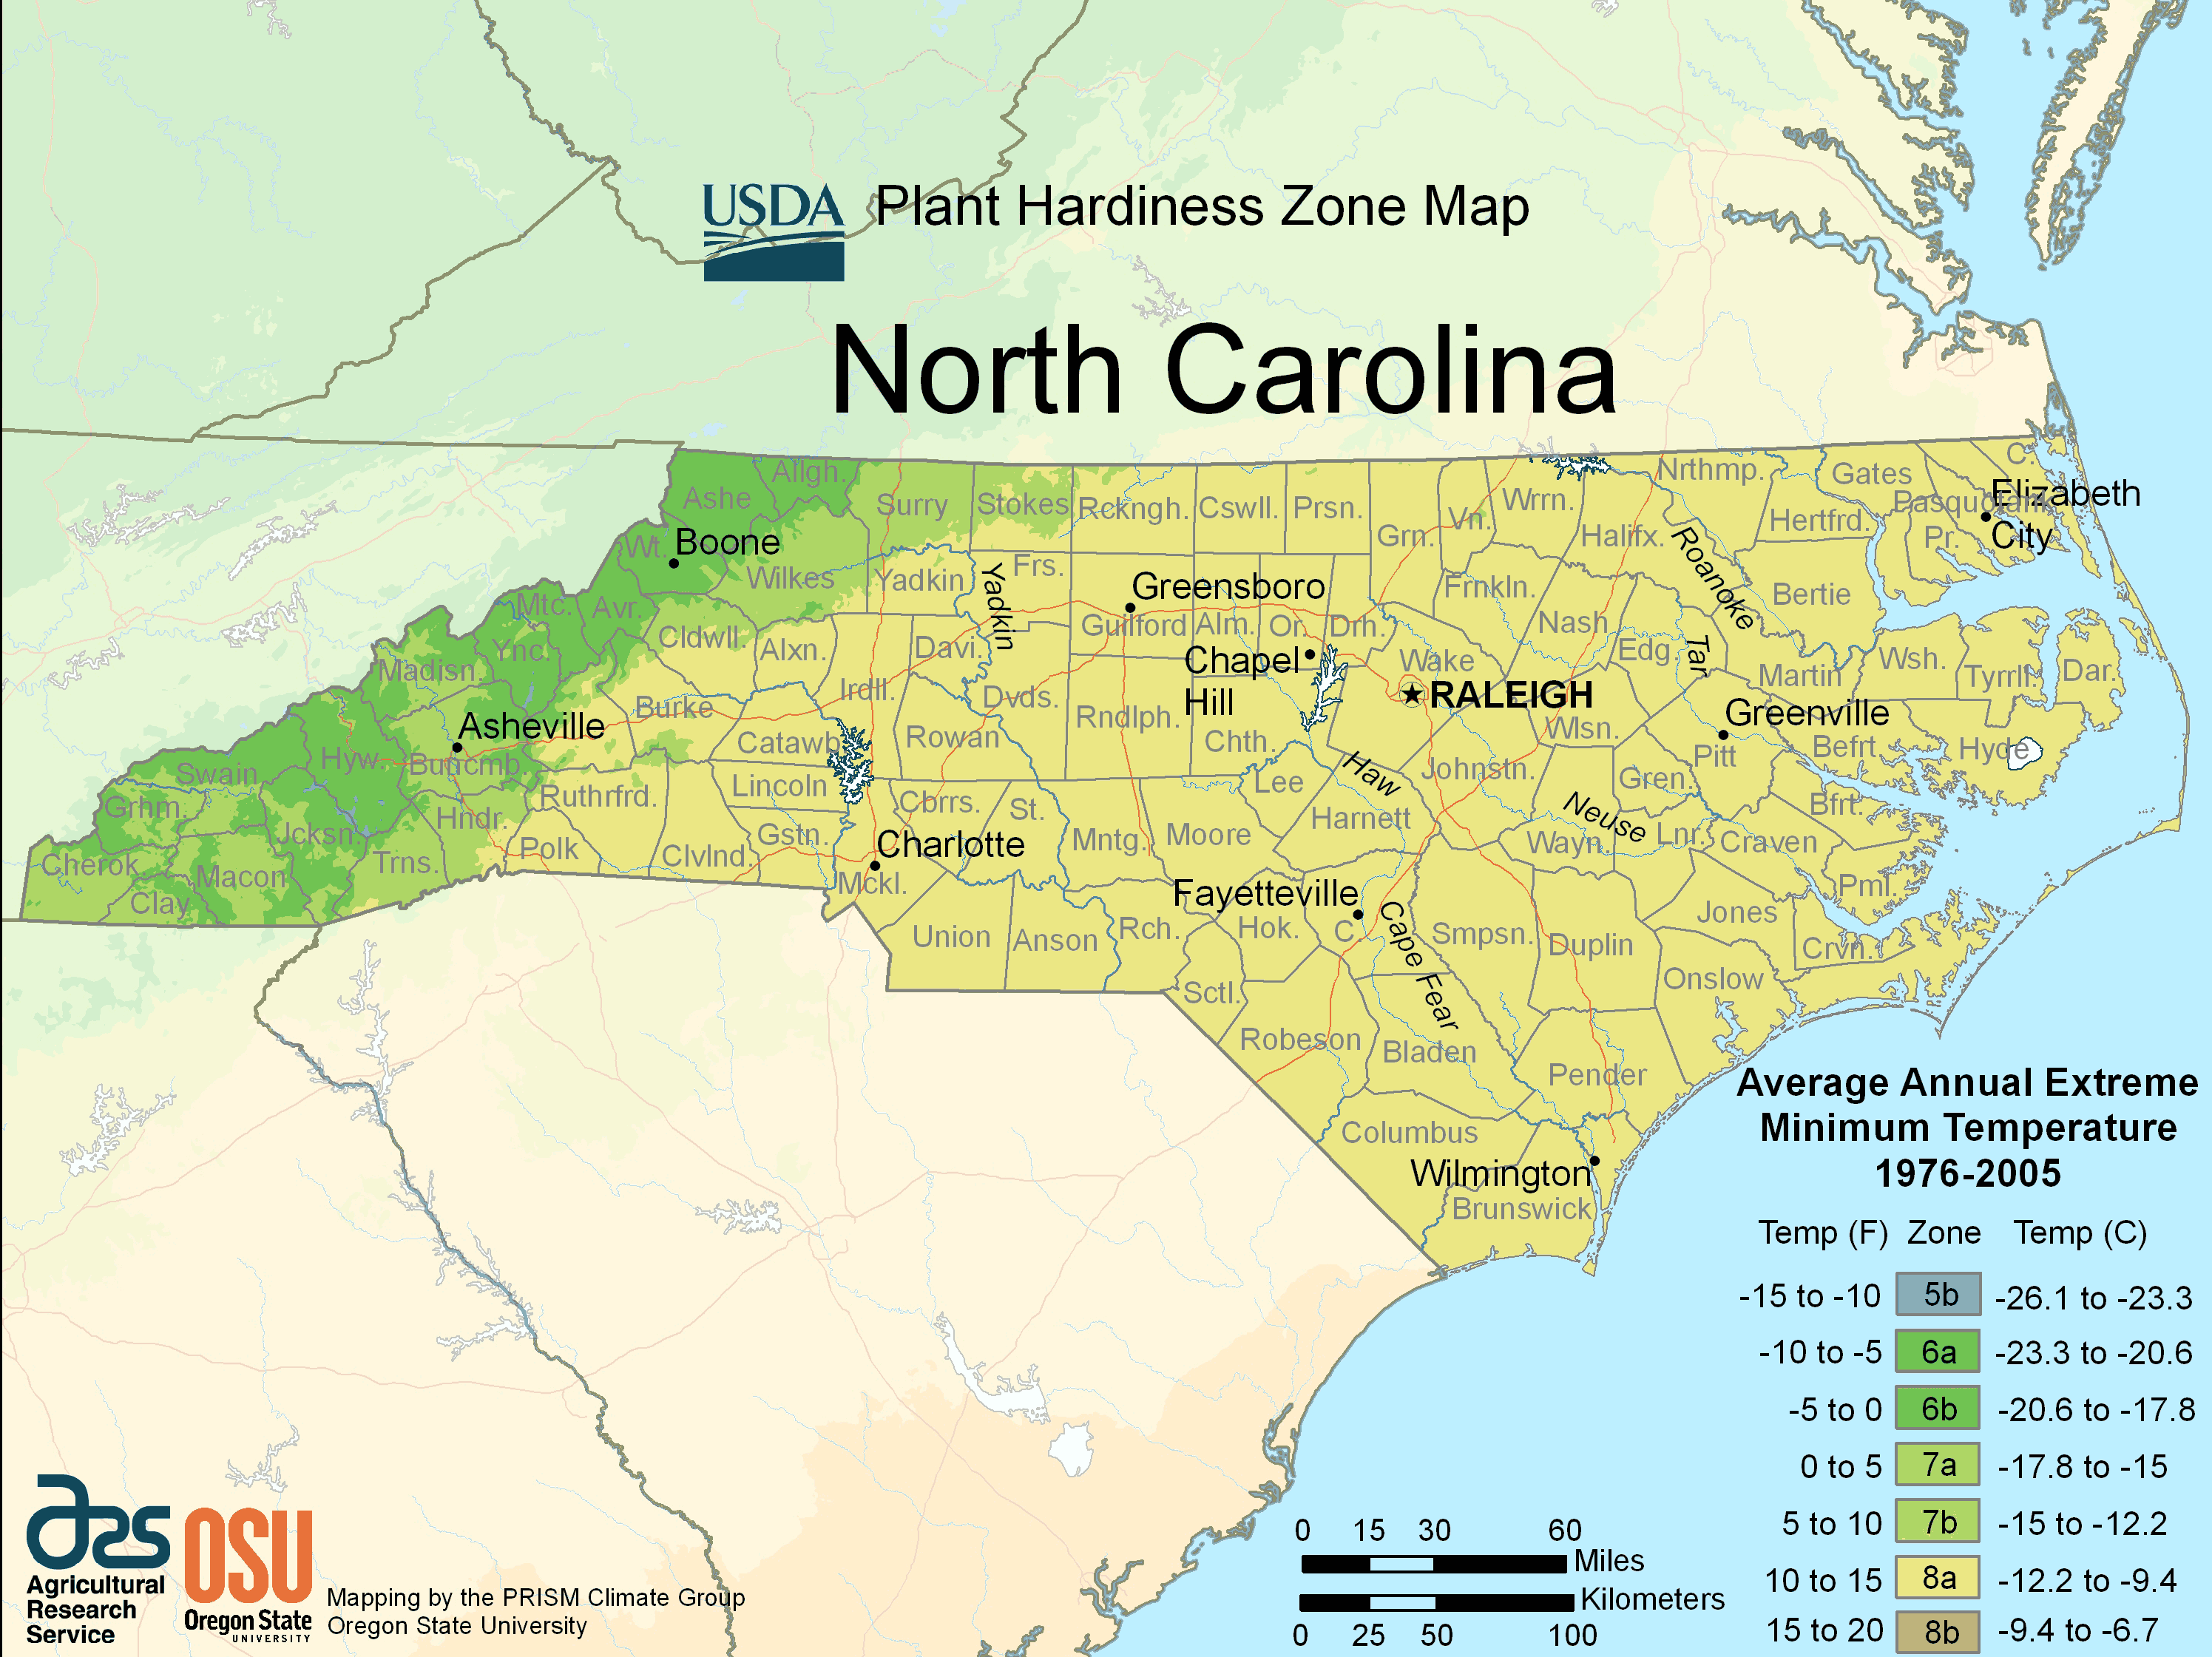 North Carolina Plant Hardiness Zone Map